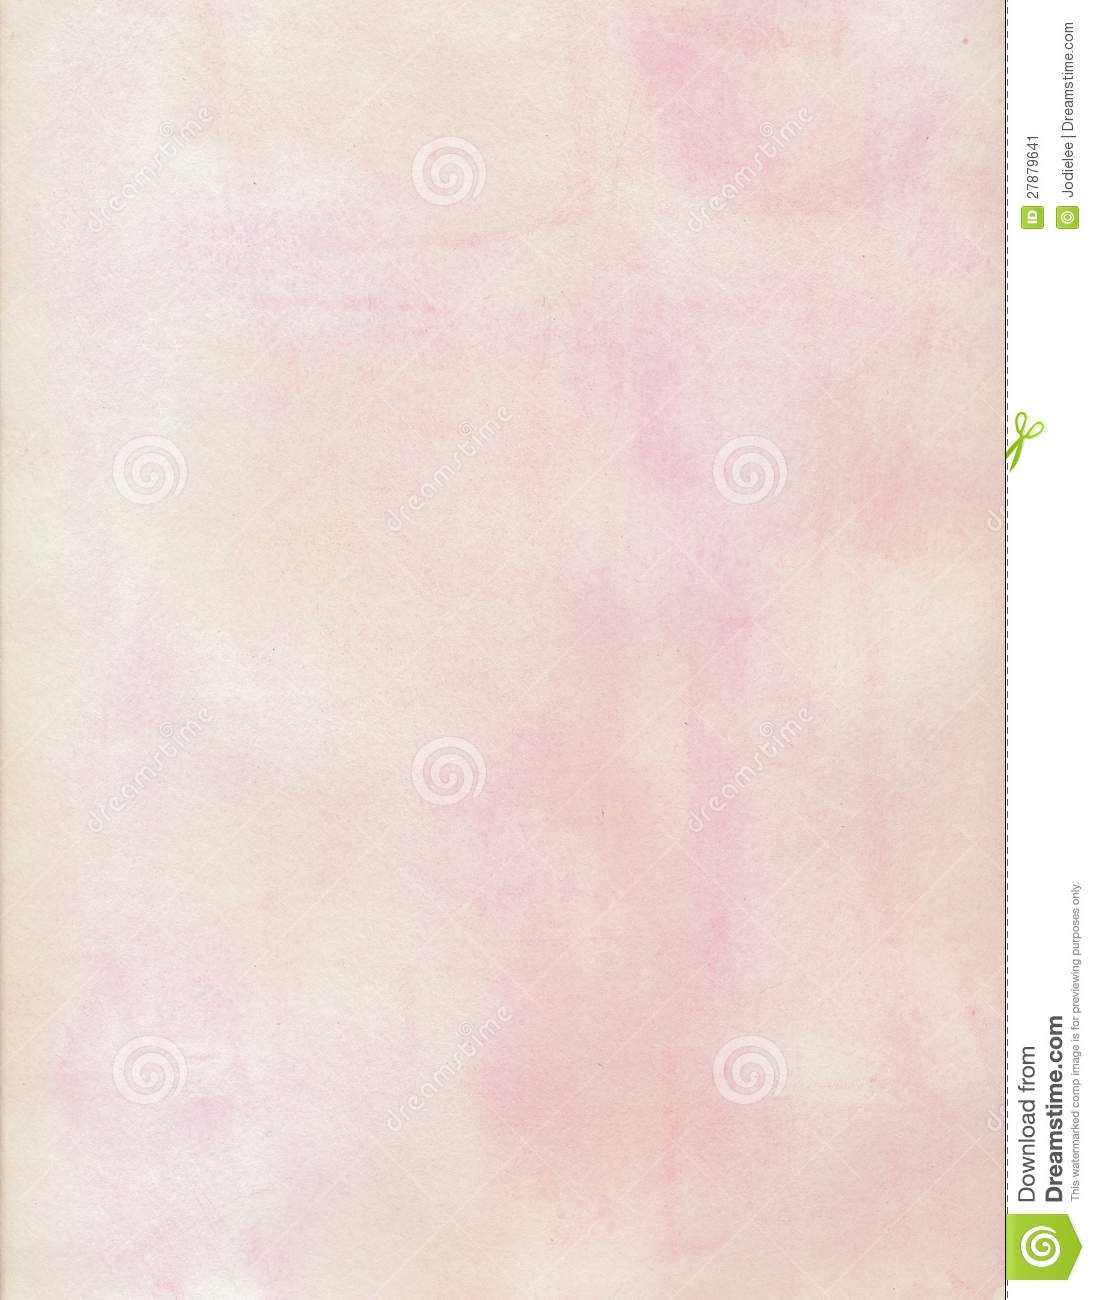 Cream and pink water color soft grungy background